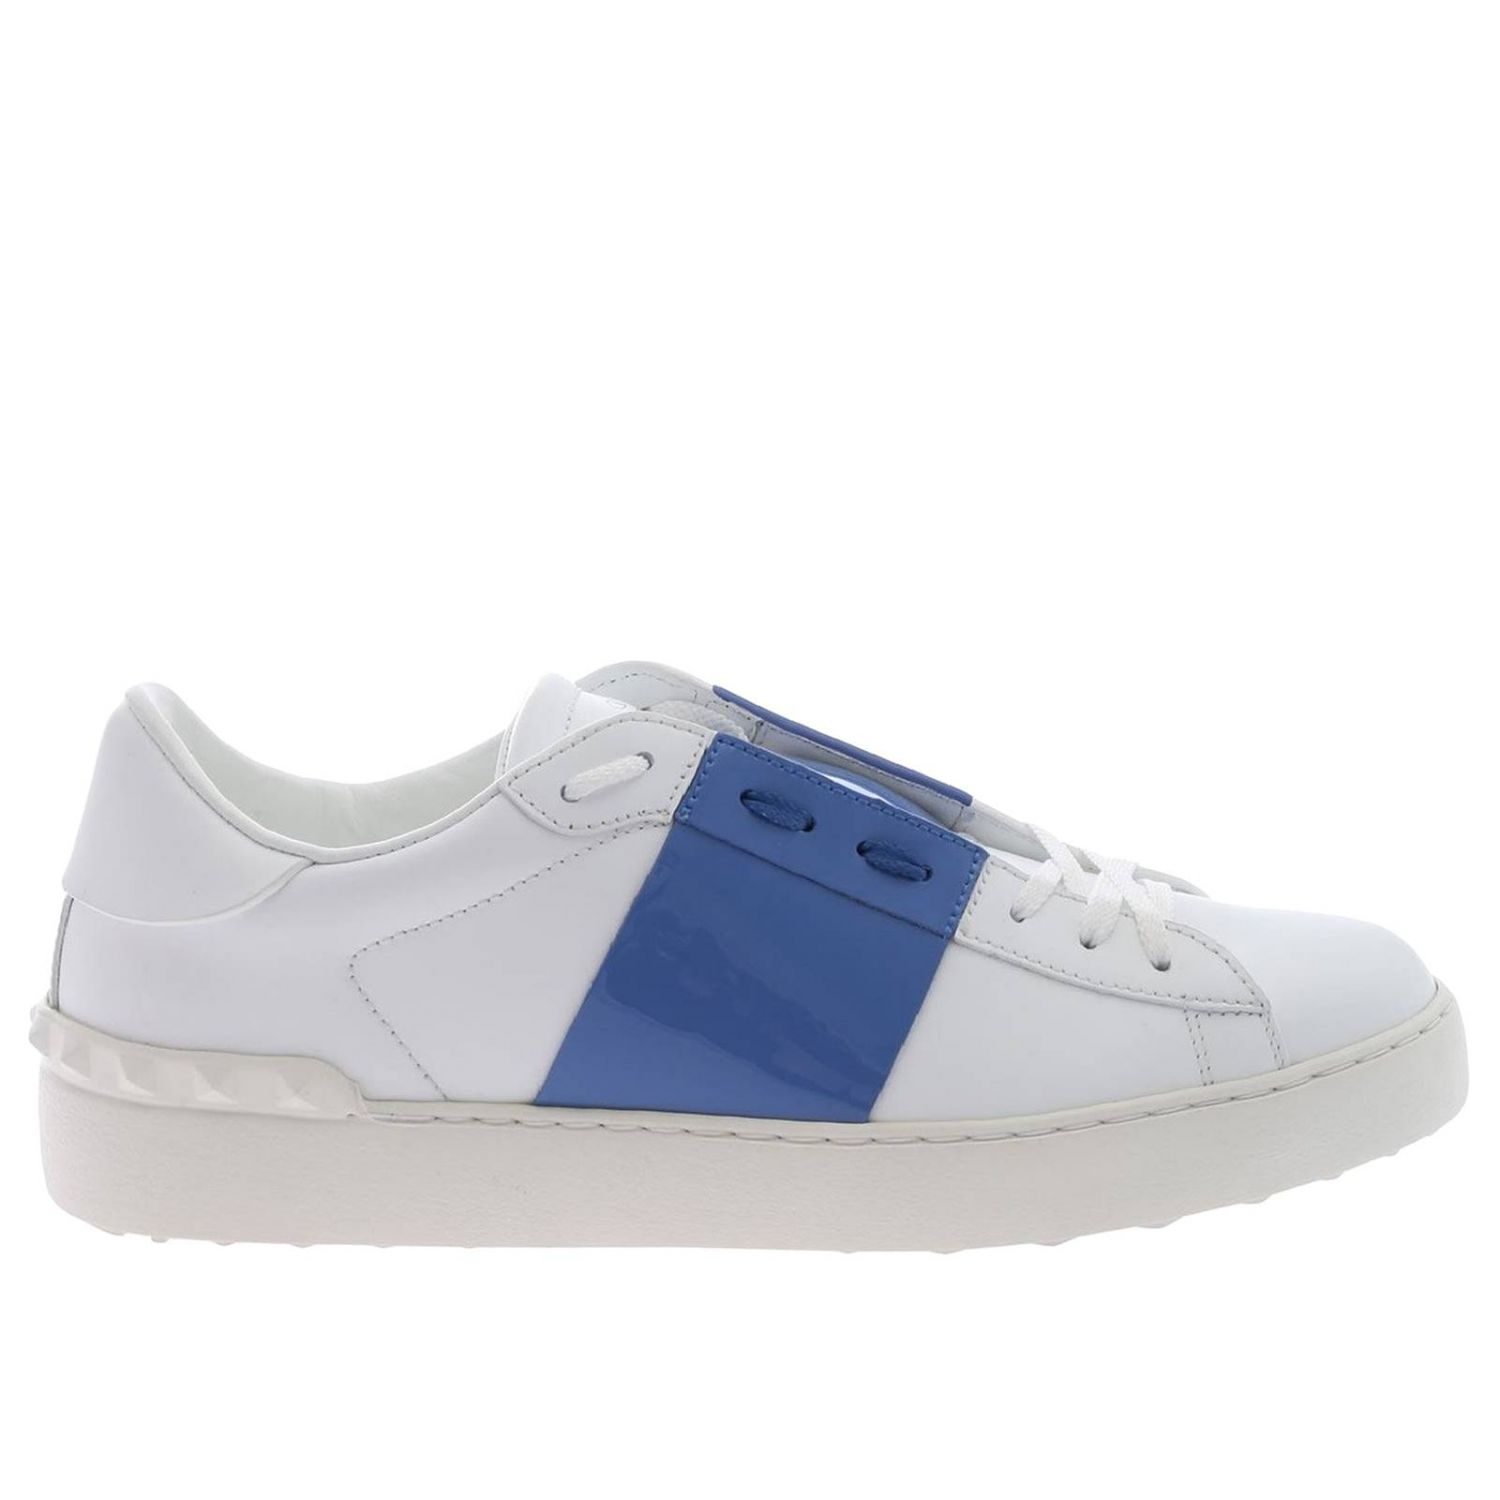 VALENTINO | Sneakers Shoes Women Valentino Garavani | Goxip